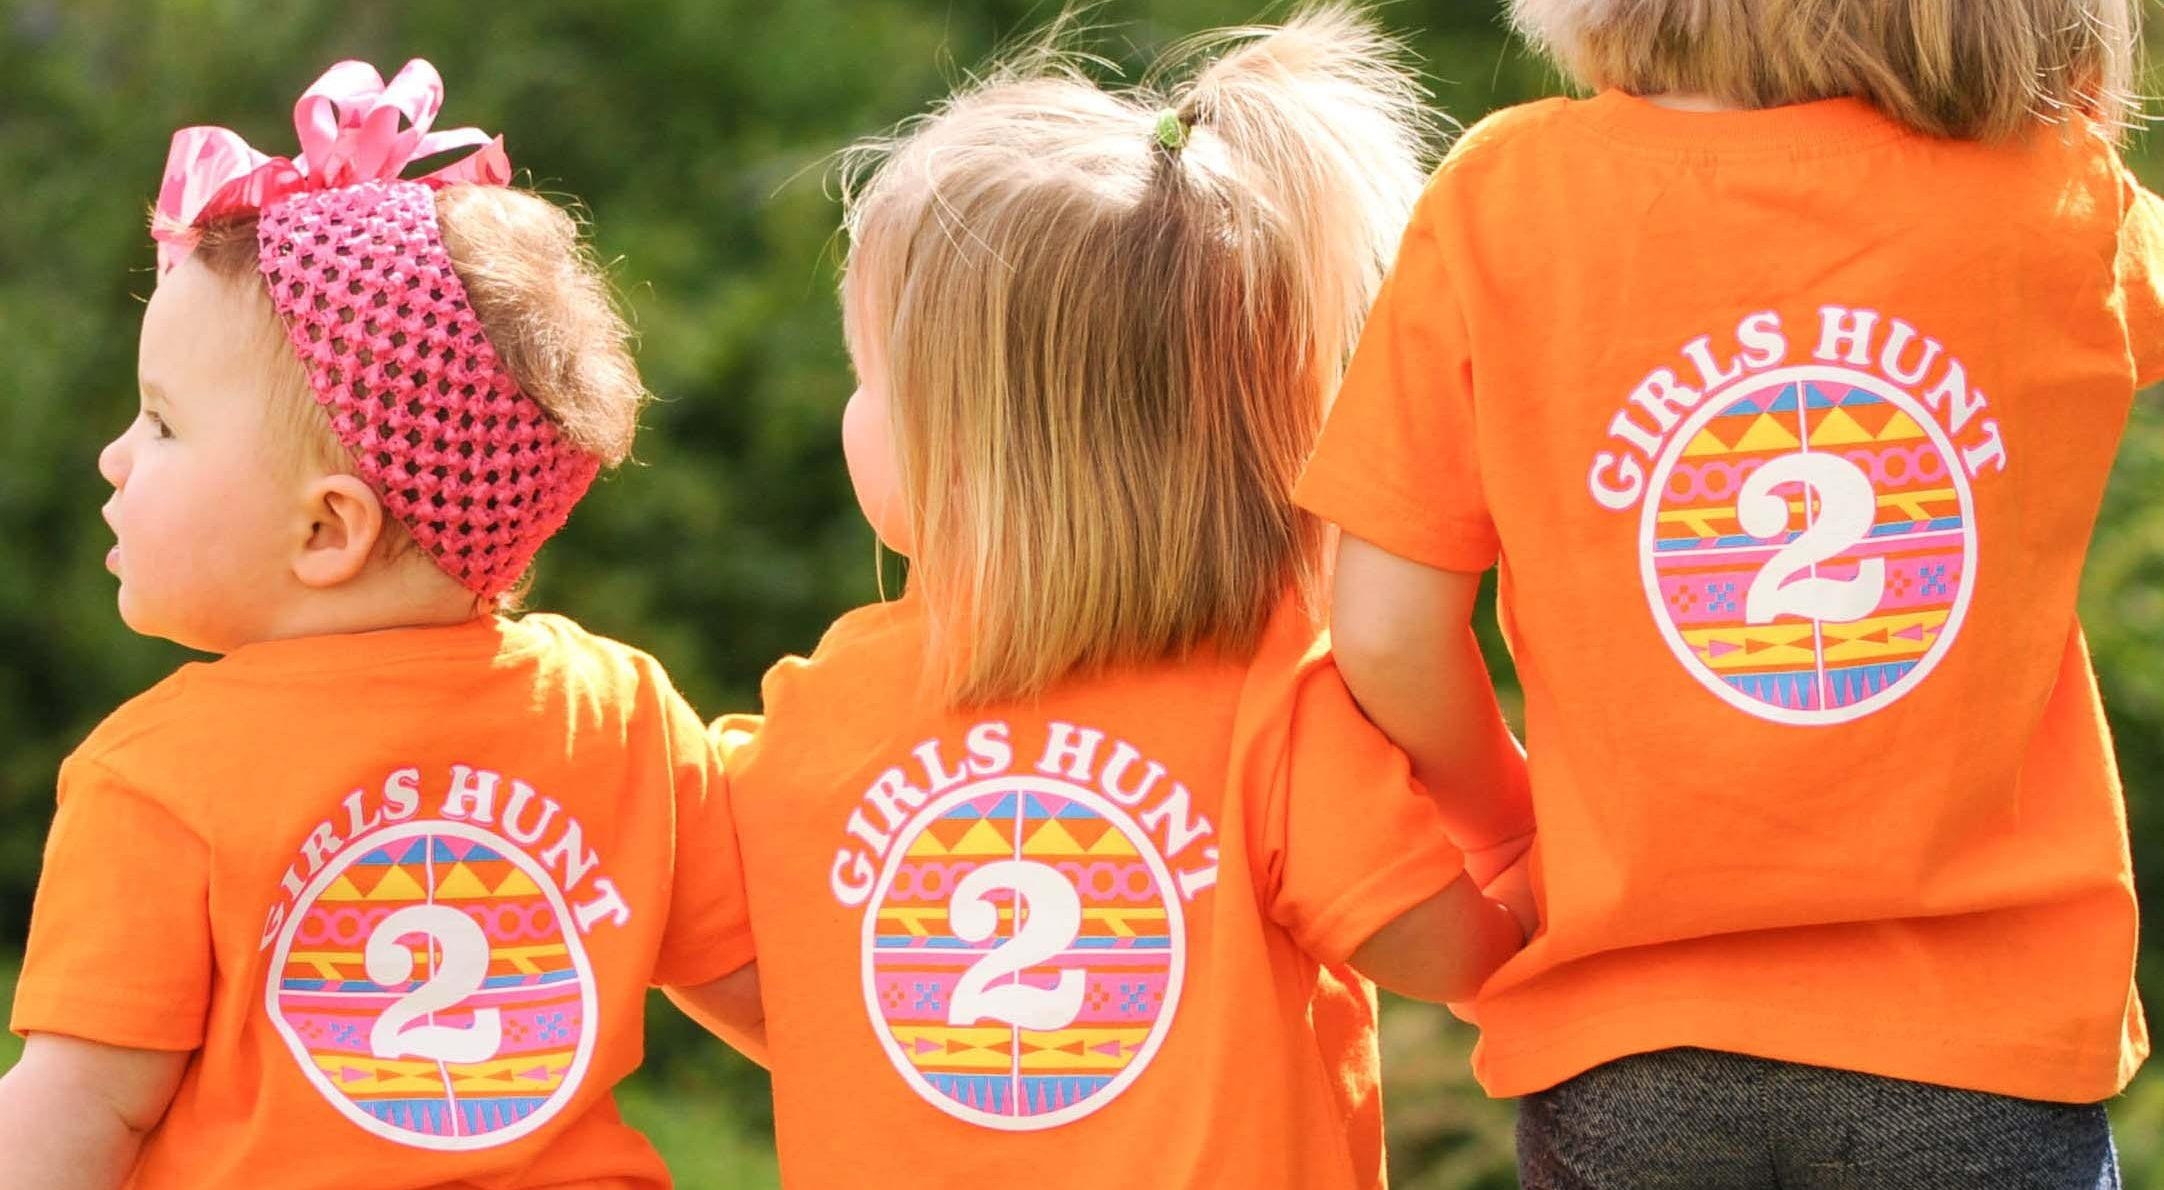 Three Young Ladies in Shirts that say _Girls Hunt 2_ on the Back